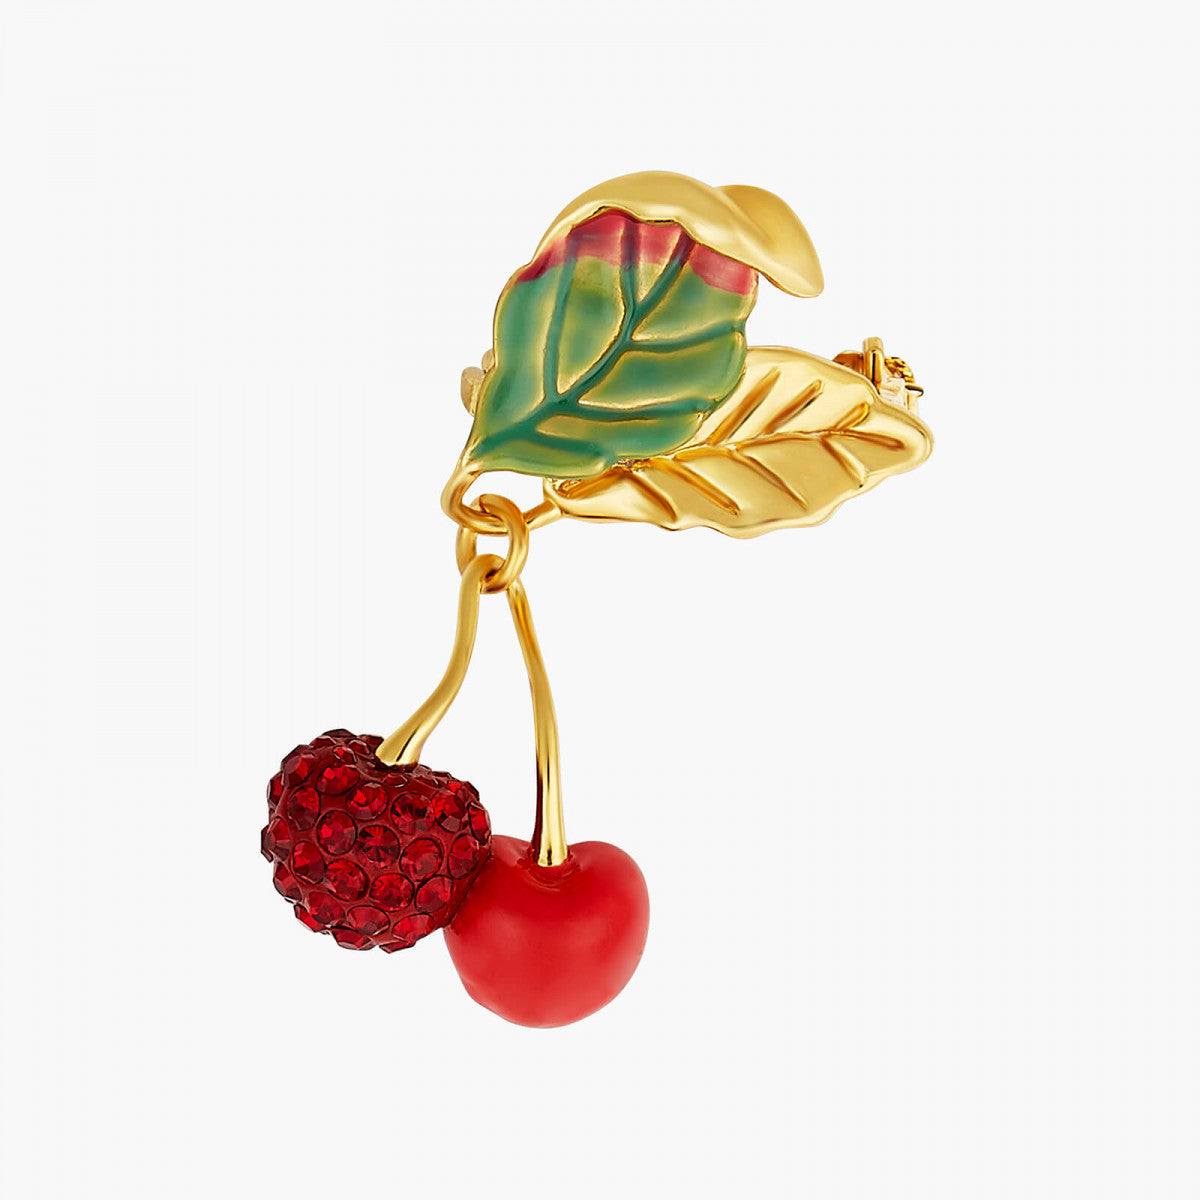 Cherries and Leaves Brooch